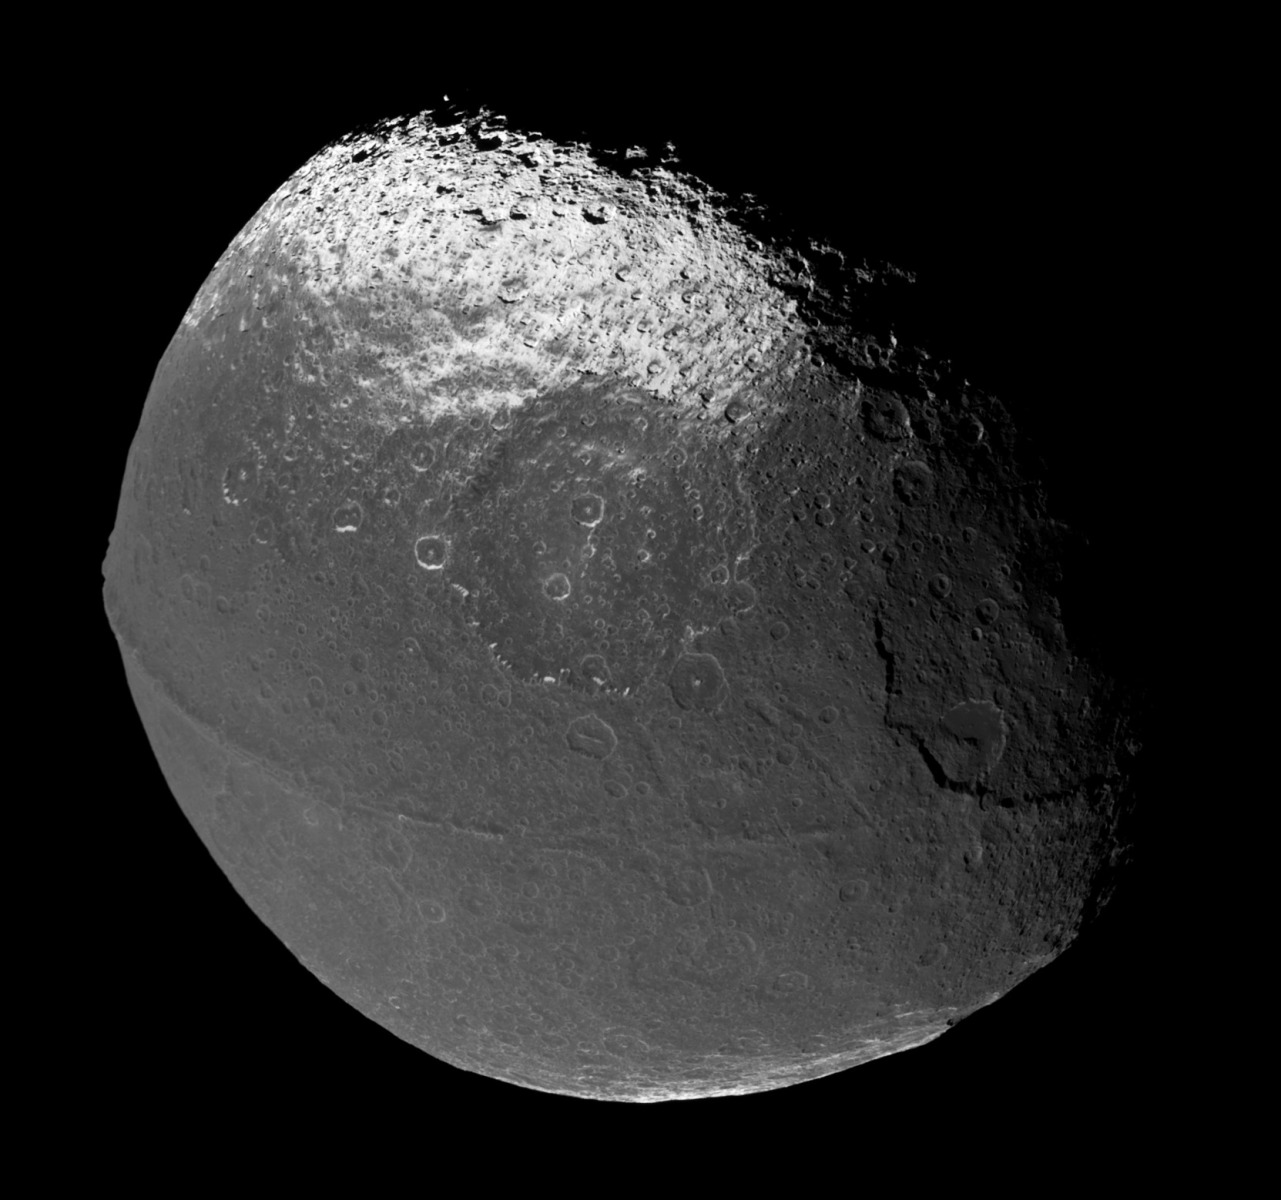 Mosaic of Iapetus images taken by the Cassini spacecraft, Dec. 31, 2004. Photomosaic assembled by Matt McIrvin.